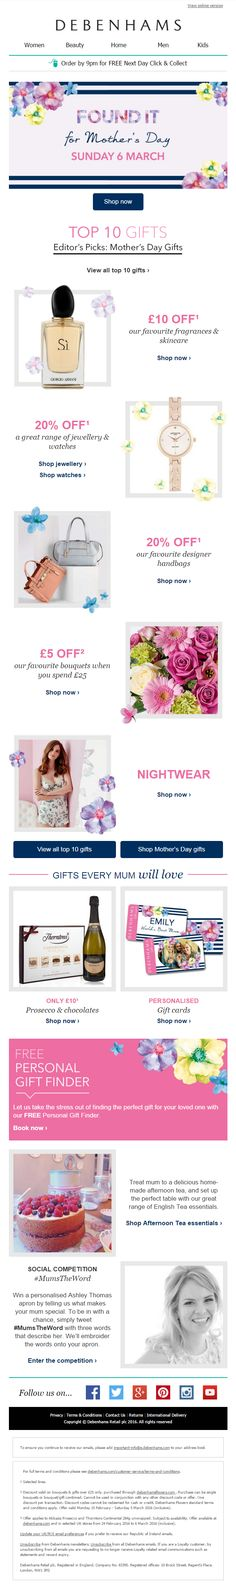 Debenhams Mother's Day Email featuring Top 10 gifts with offers, a personal gift finder and a social media competition #EmailMarketing #Retail #Social #Media #Competition #Product #Recommendations #MothersDay